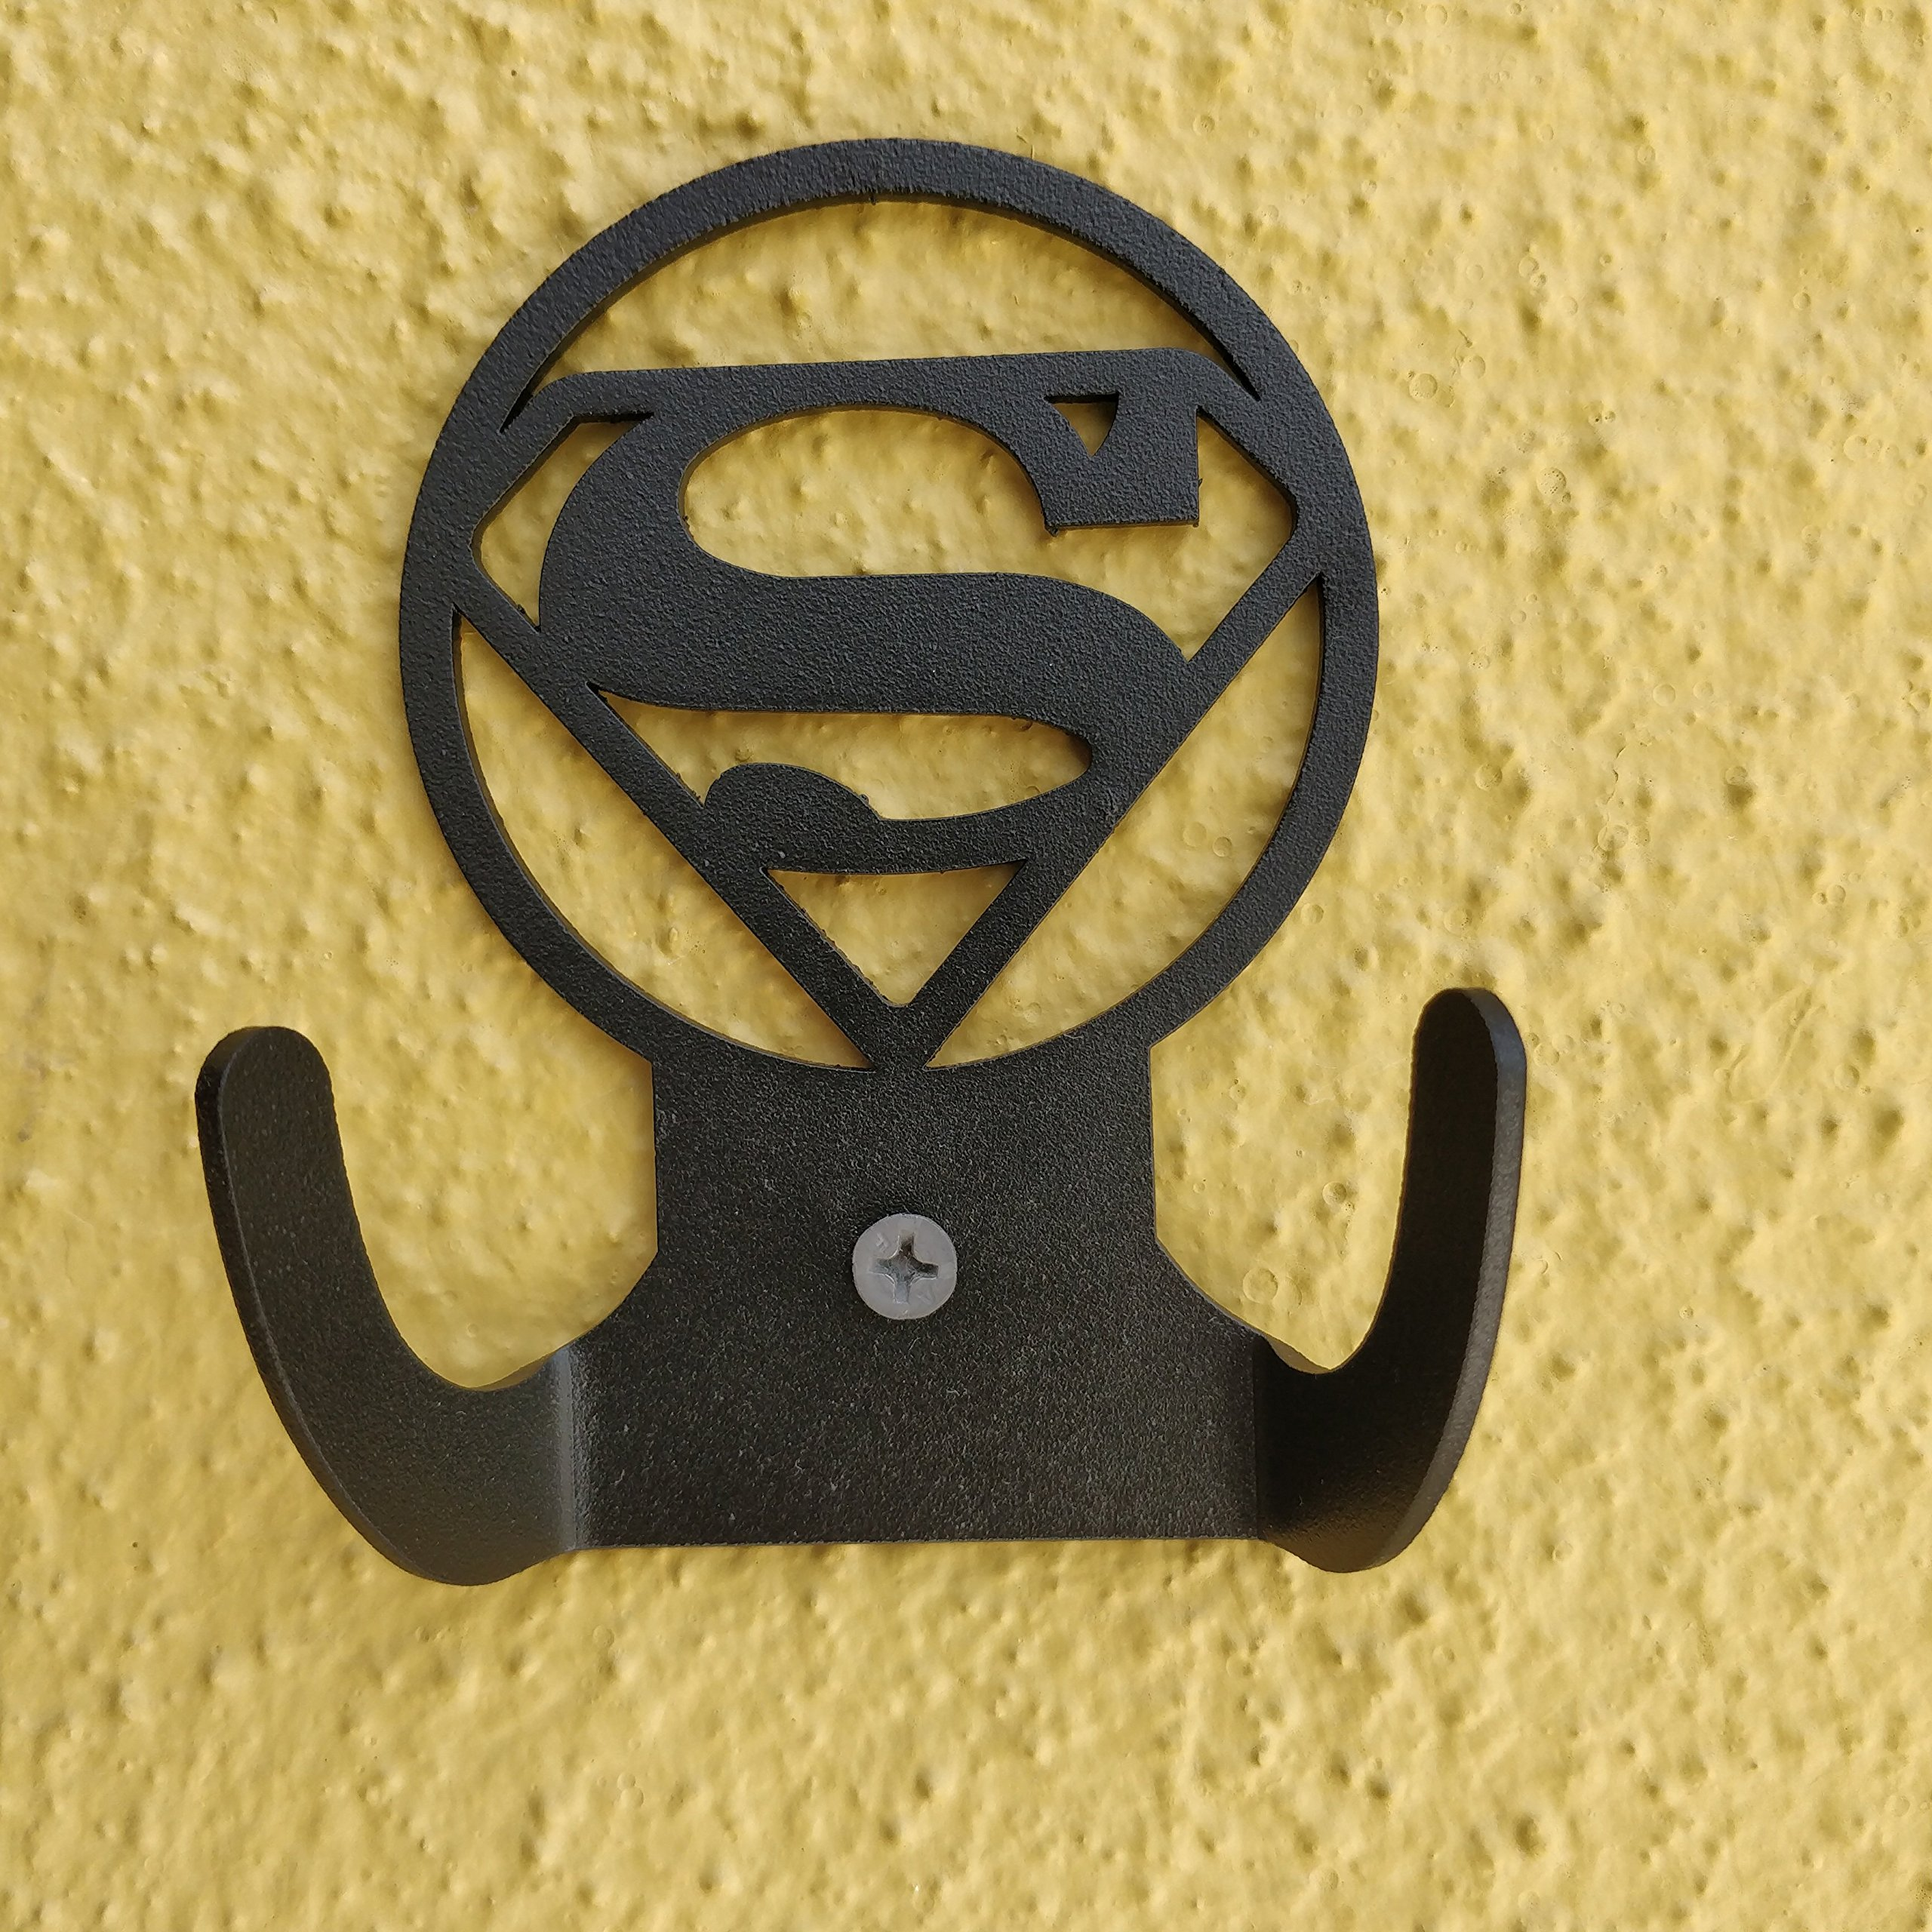 HeavenlyKraft Superman Logo Steel Wall Hook Dual Holder for Living Room Coat Hat Robe Hanger Bathroom Towel Kitchen Strong Heavy Duty Garage Storage Organizer Utensil Hook Single, 4 X 3.14 X 1.4 Inch